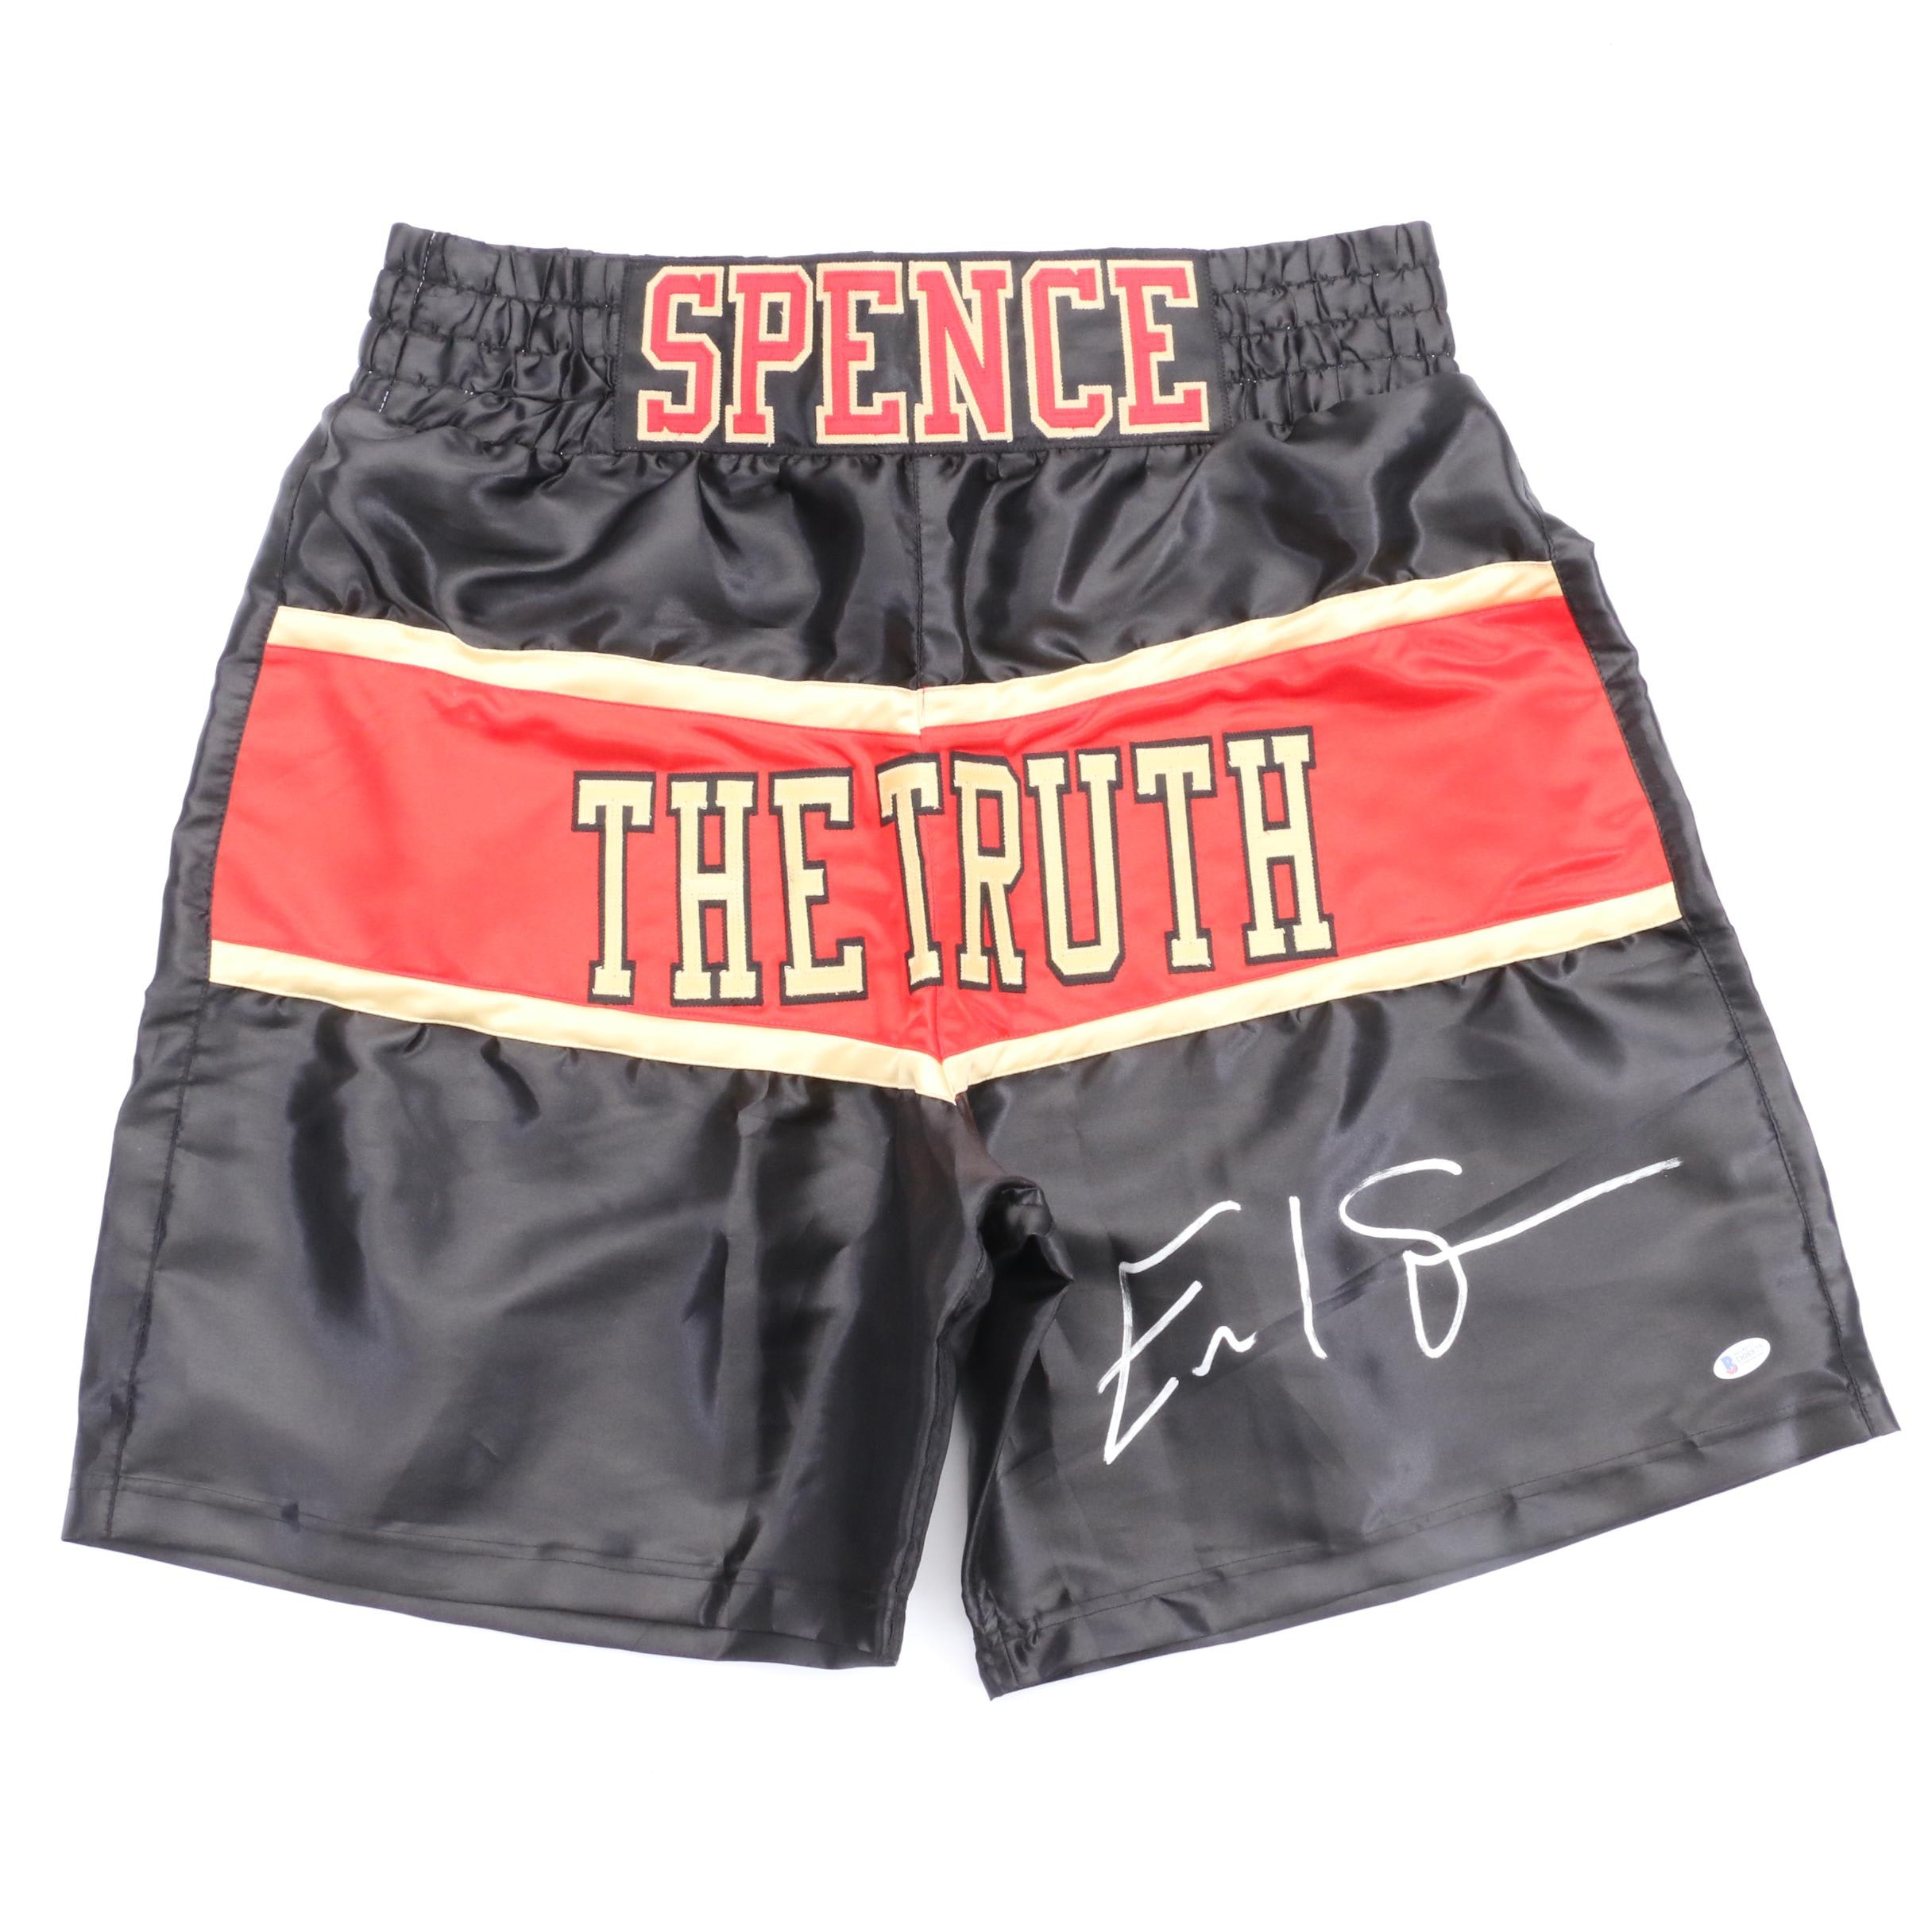 Errol Spence Jr. Signed Trunks COA